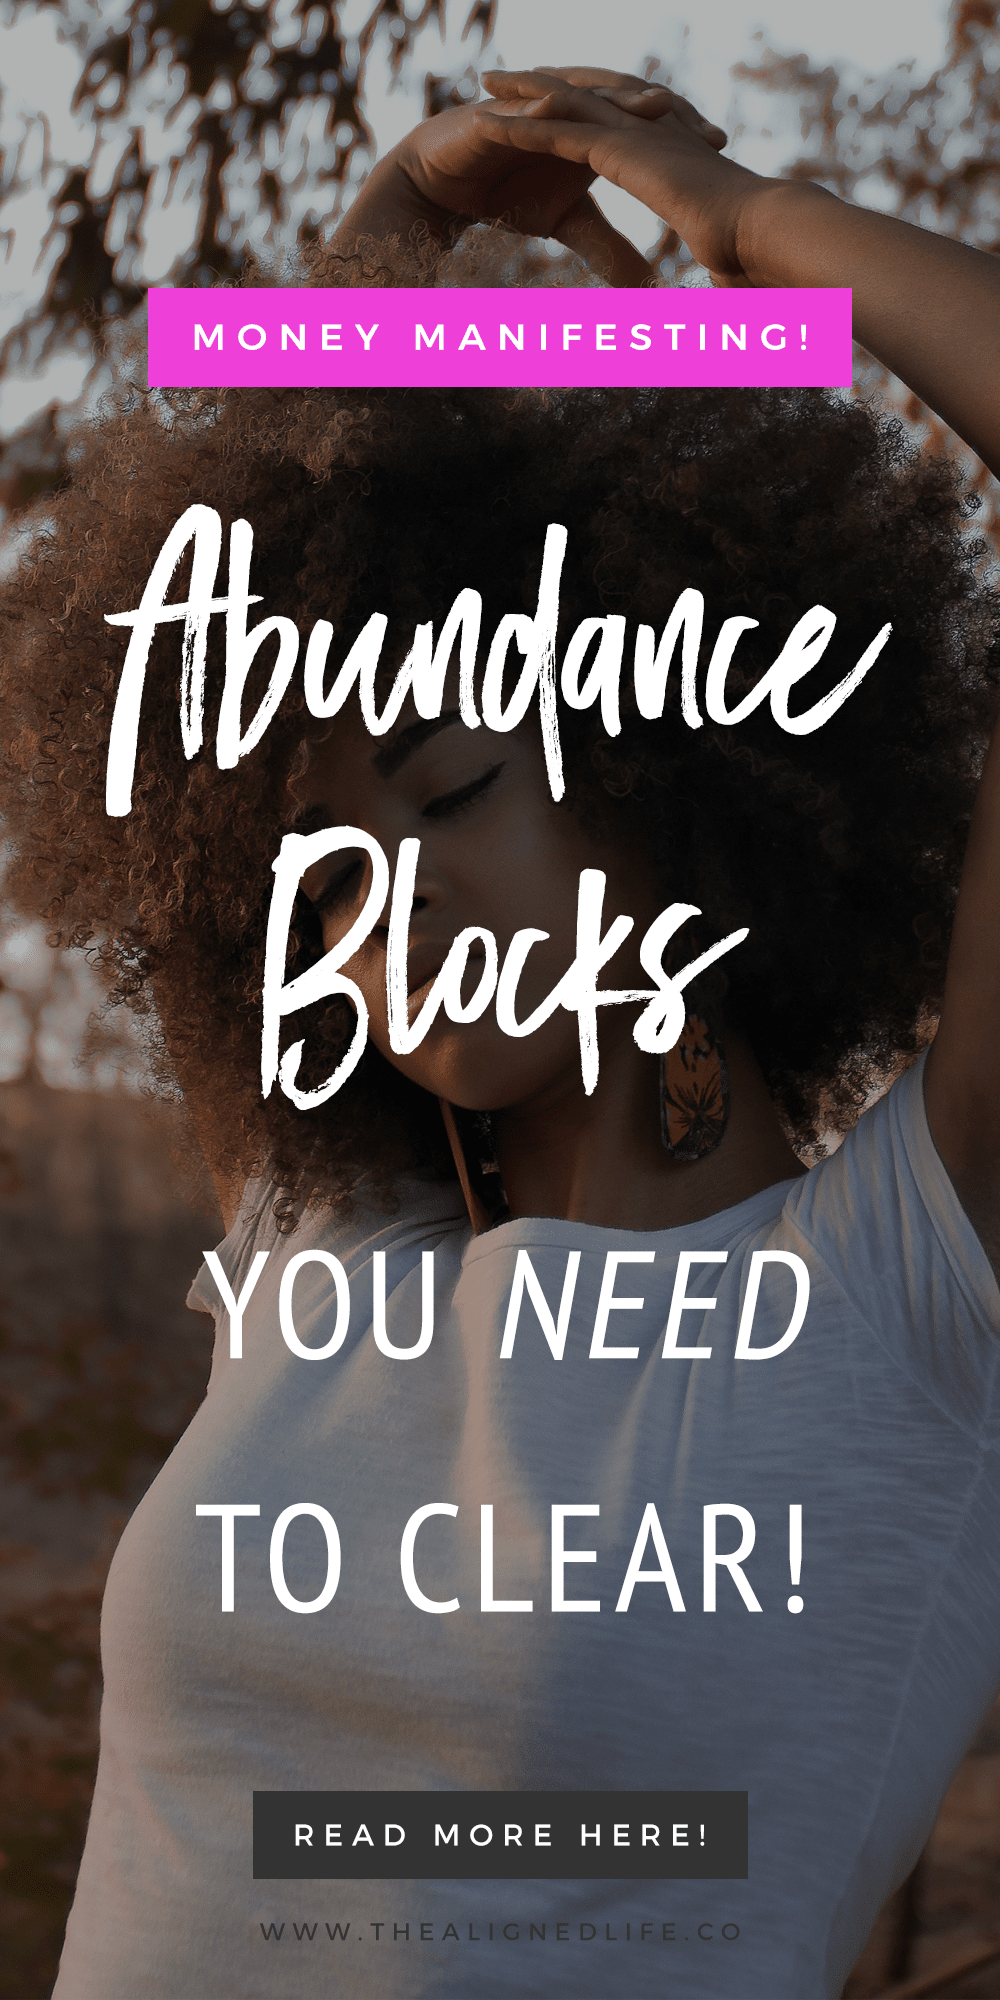 Money Manifesting: 3 Abundance Blocks You Need To Clear